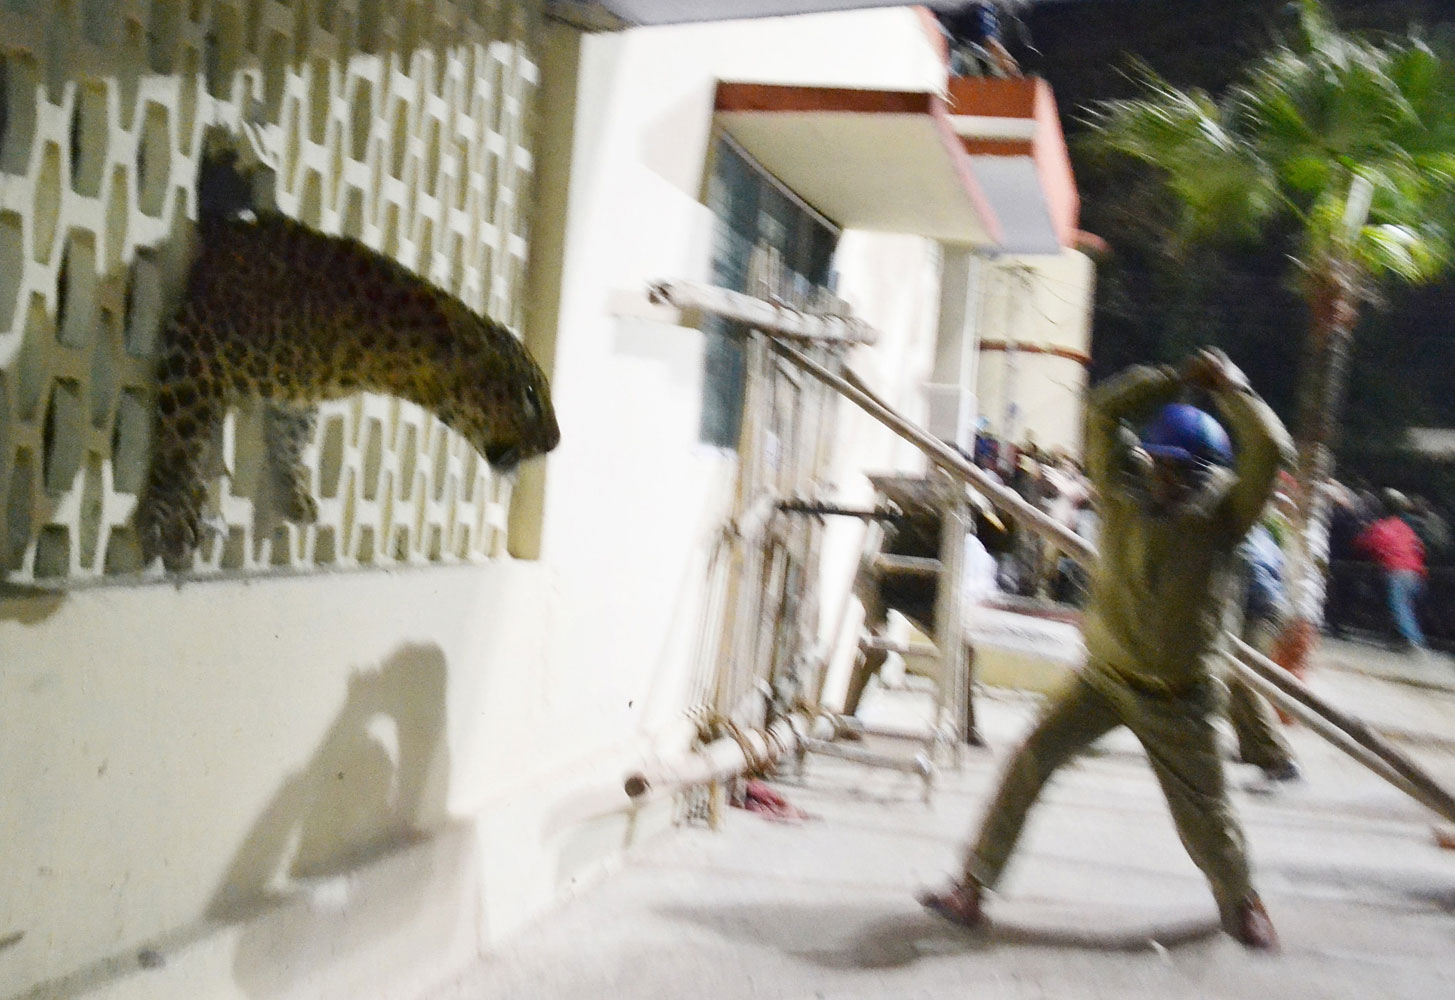 The leopard squeezes through a hole in the hospital wall. The cat is said to still be on the loose.